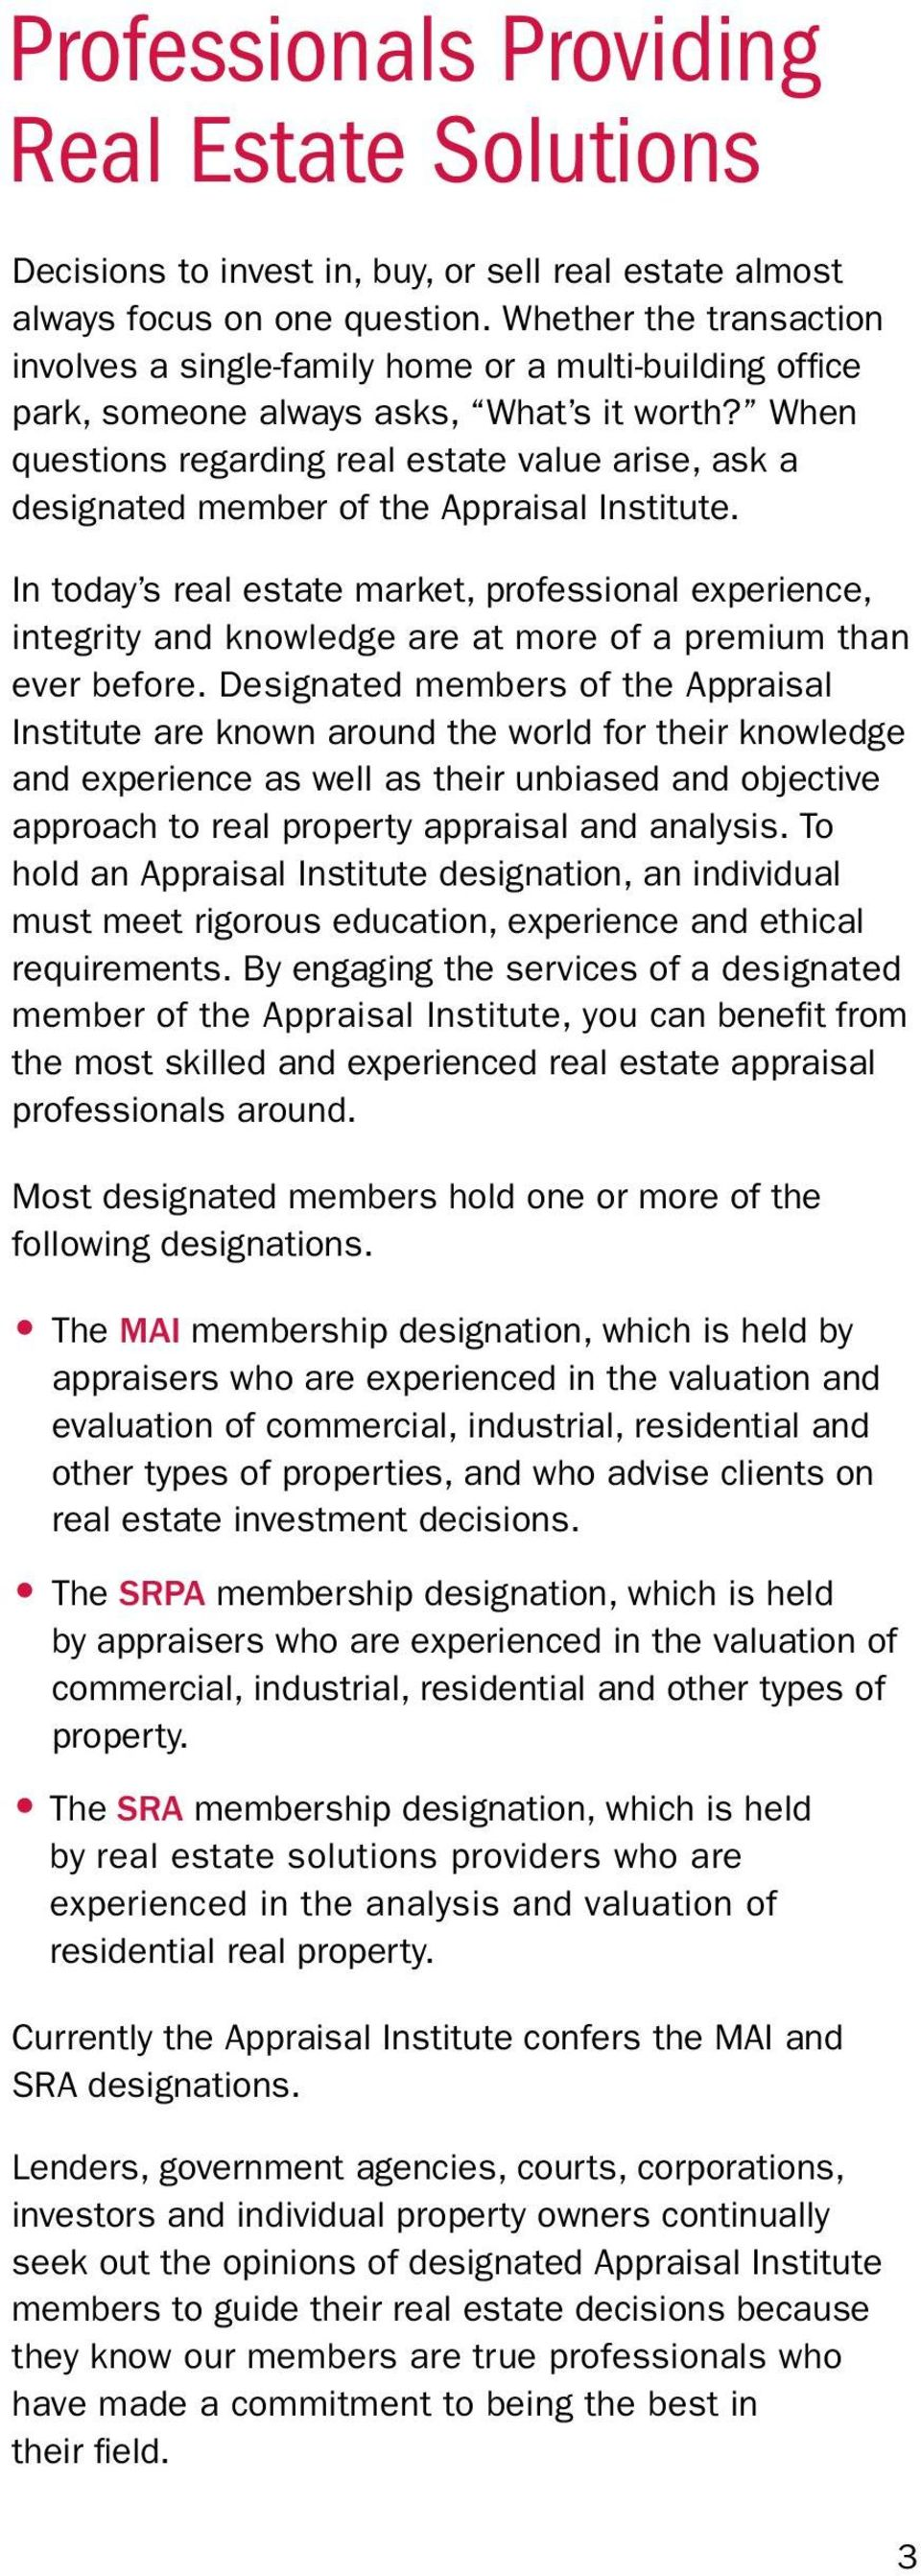 When questions regarding real estate value arise, ask a designated member of the Appraisal Institute.